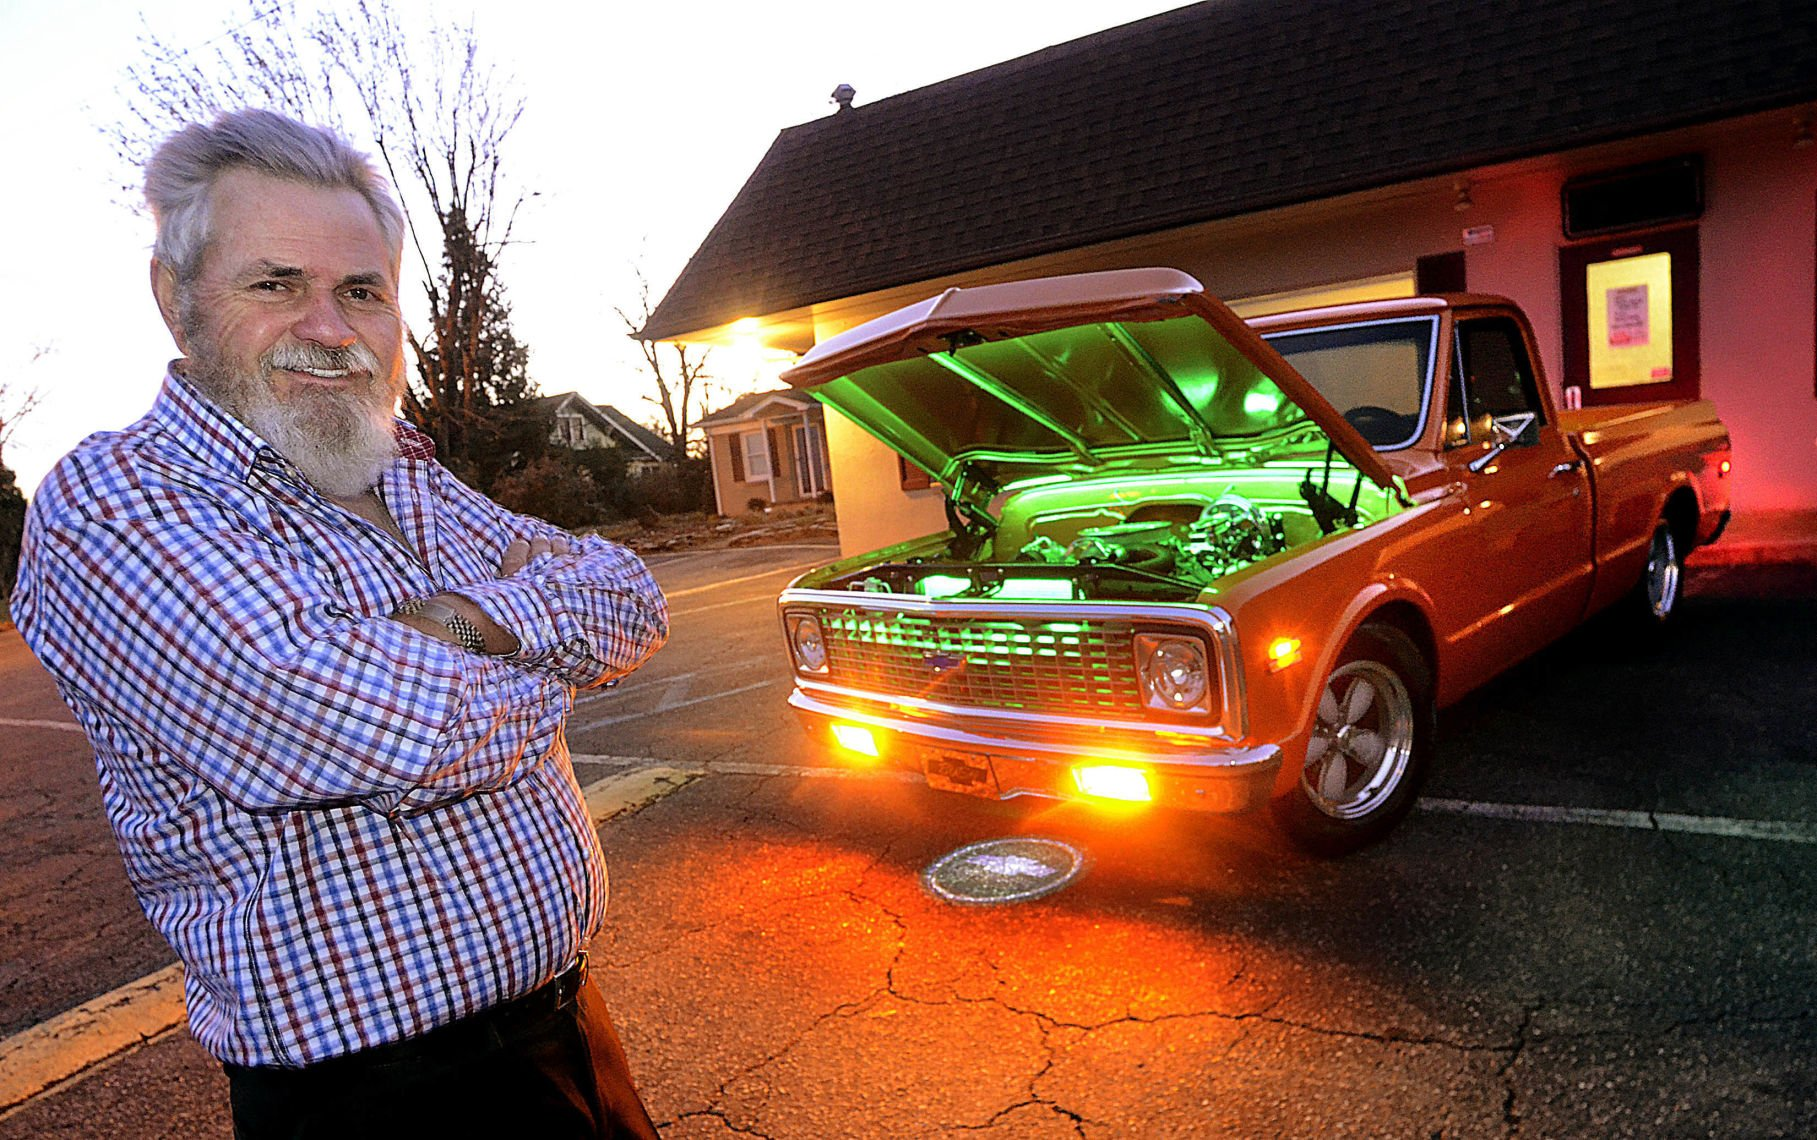 1971 chevy truck lights up the night vehicle features a train horn 1993 Chevy Truck 1971 chevy truck lights up the night vehicle features a train horn and 35 feet of led lights